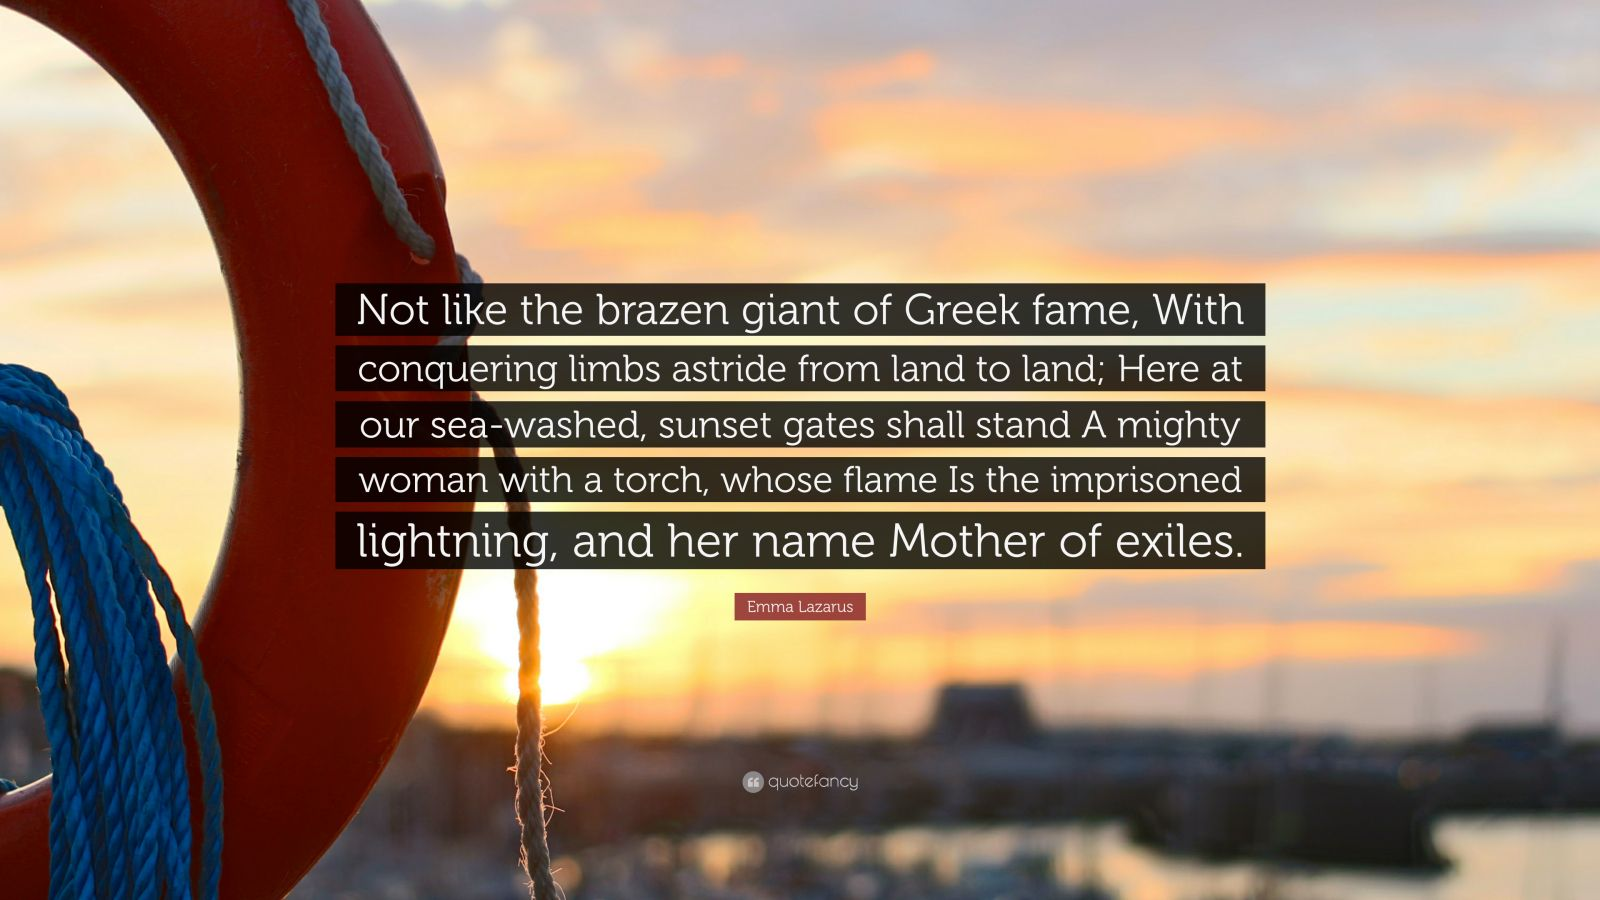 """Emma Lazarus Quote: """"Not like the brazen giant of Greek fame, With conquering limbs astride from land to land; Here at our sea-washed, sunset gates shall stand A mighty woman with a torch, whose flame Is the imprisoned lightning, and her name Mother of exiles."""""""